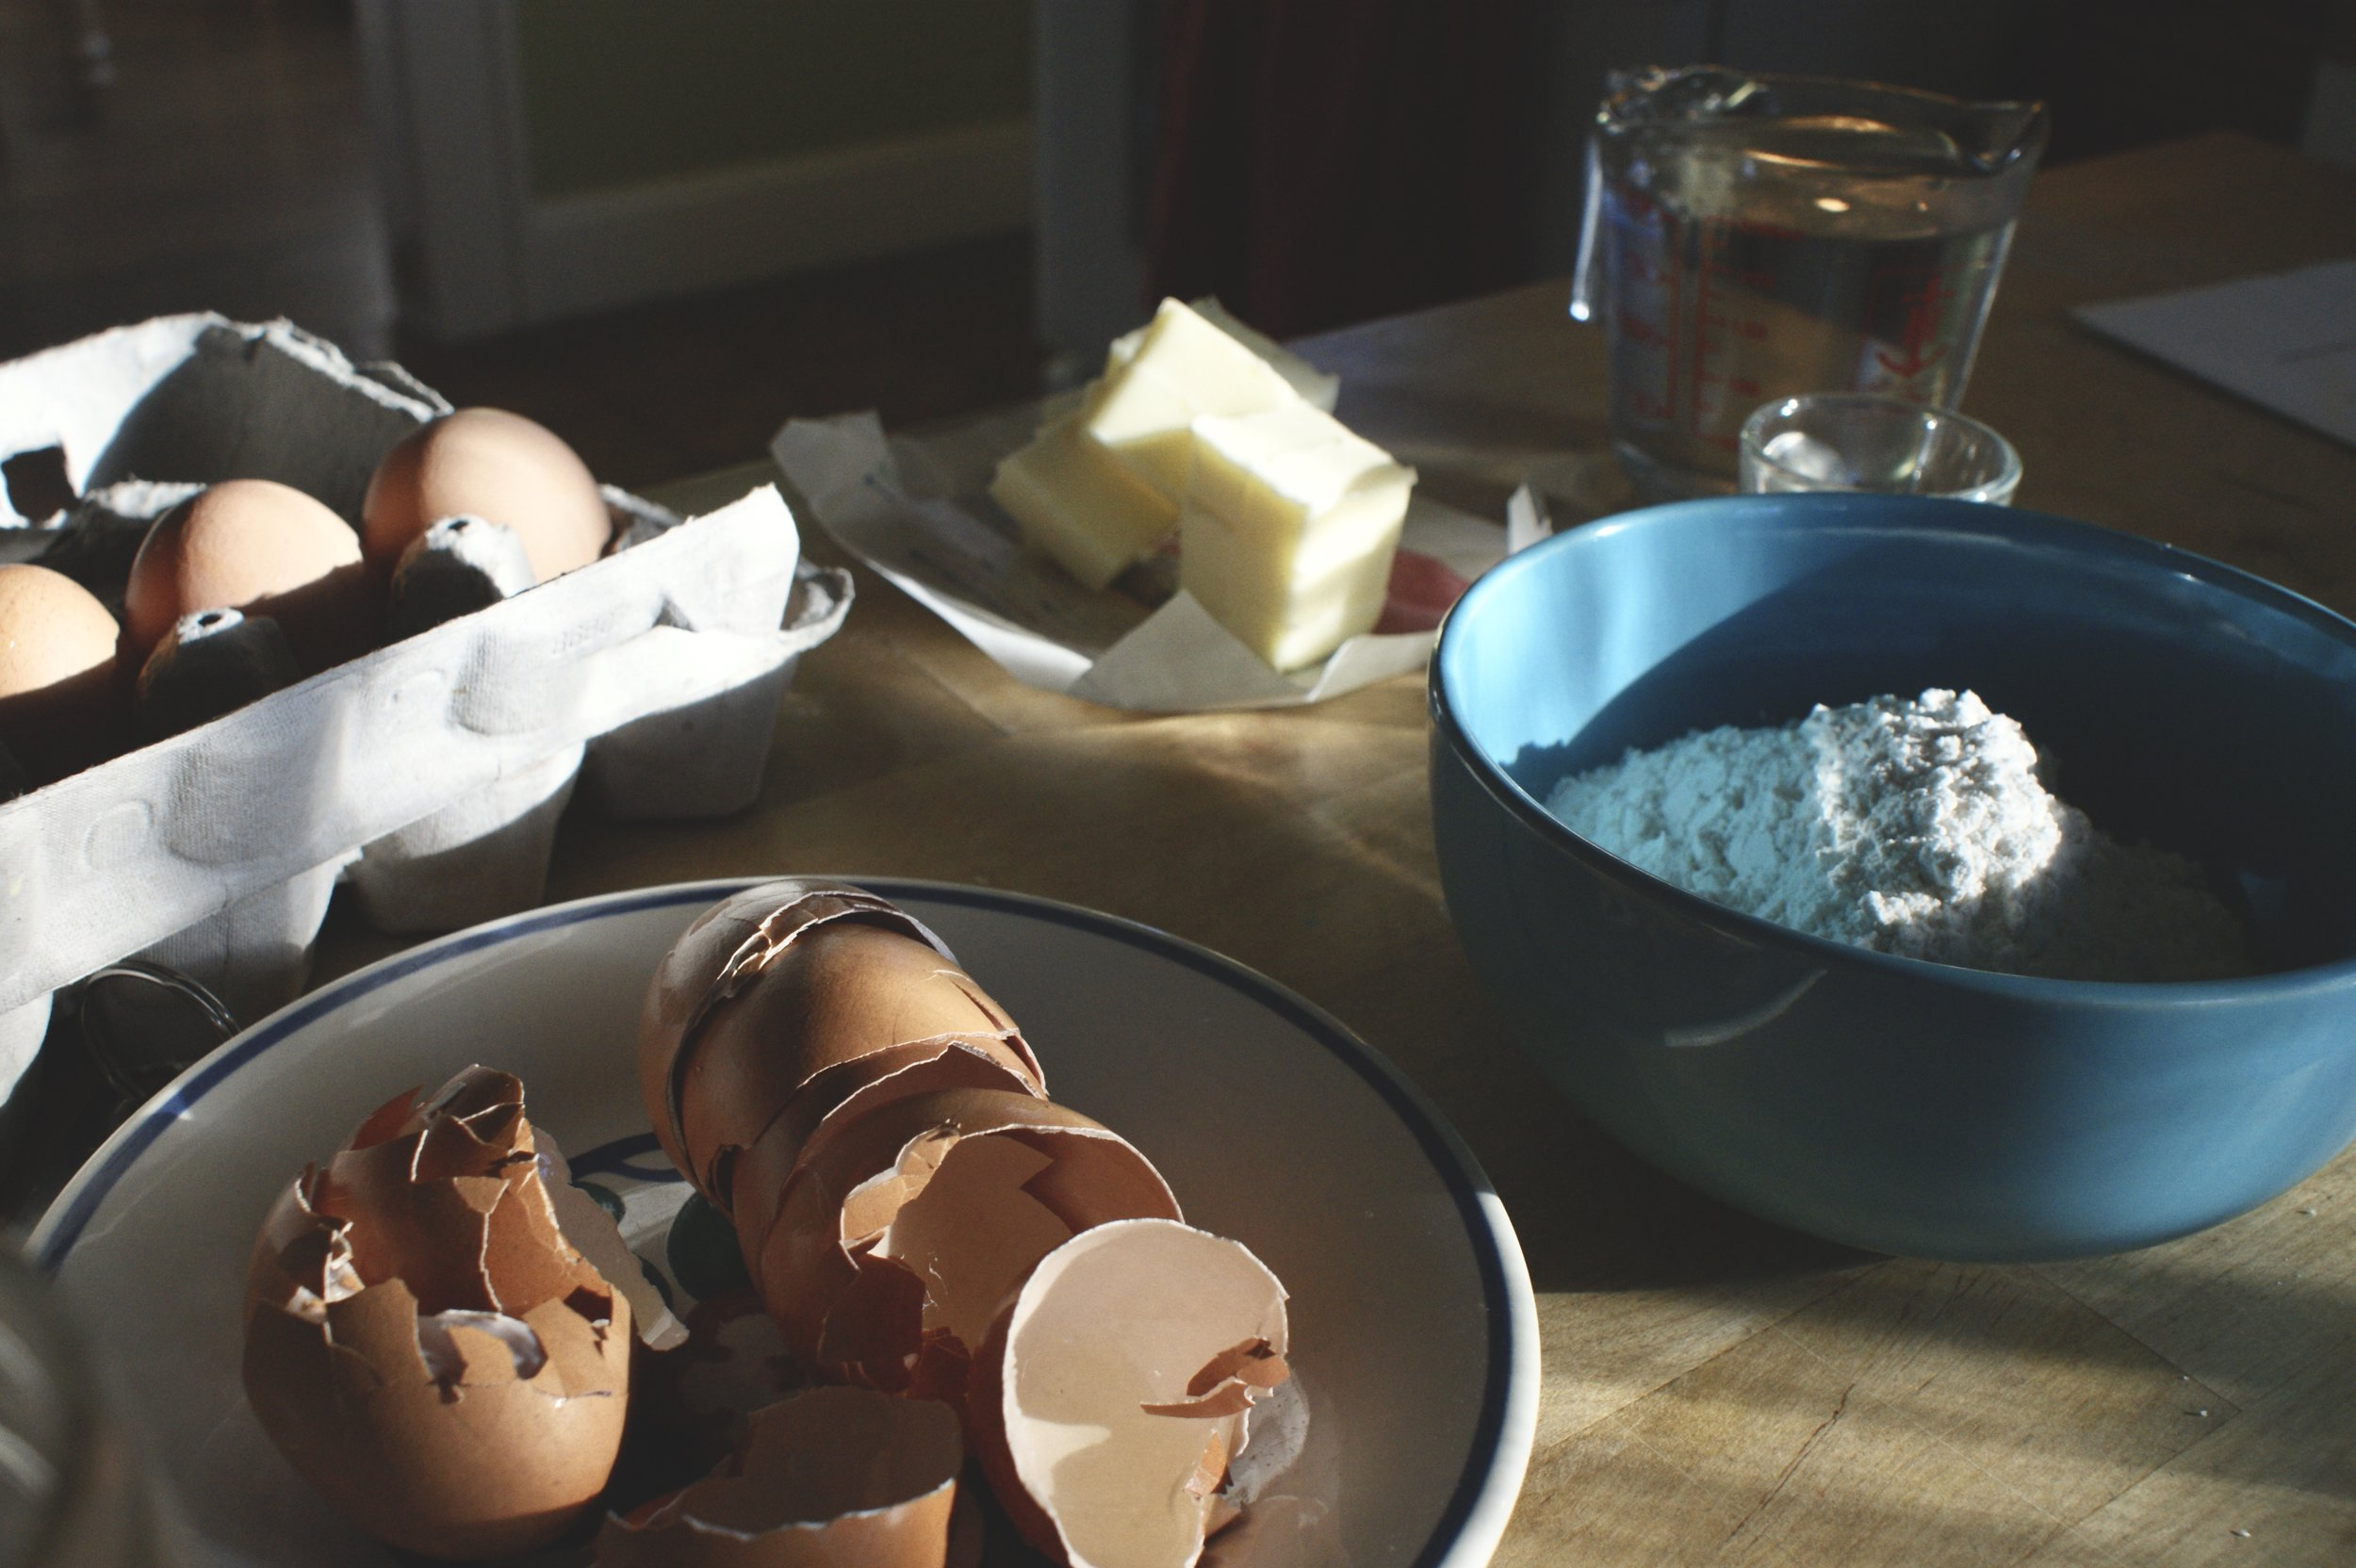 My favorite hour to be in the kitchen is sunset. I loved how the light played with the textures of eggshells + flour and the patterns that were reflected by glass bowls onto the hardwood.